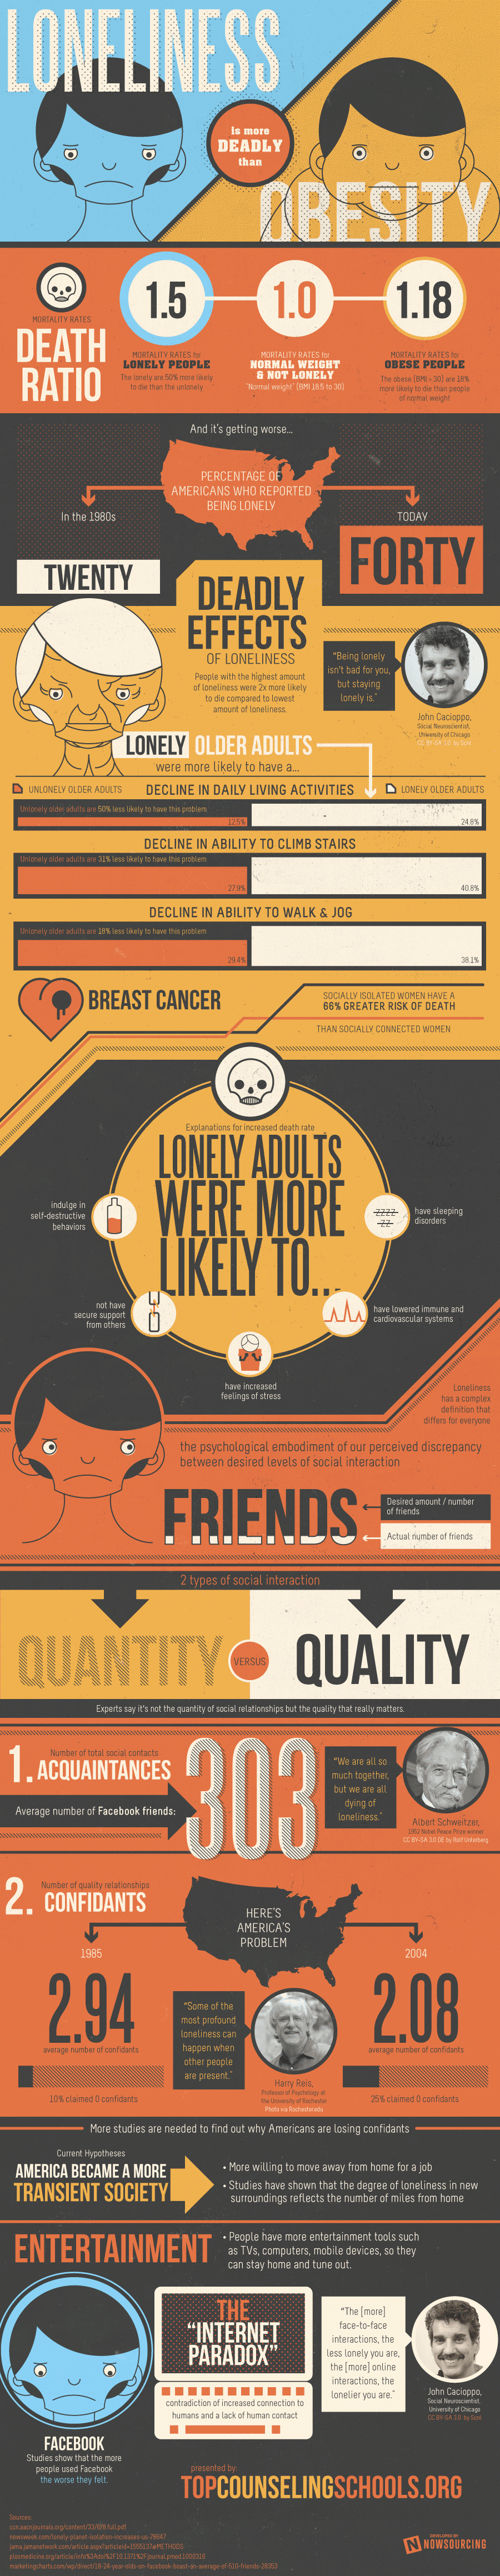 loneliness-vs-obesity